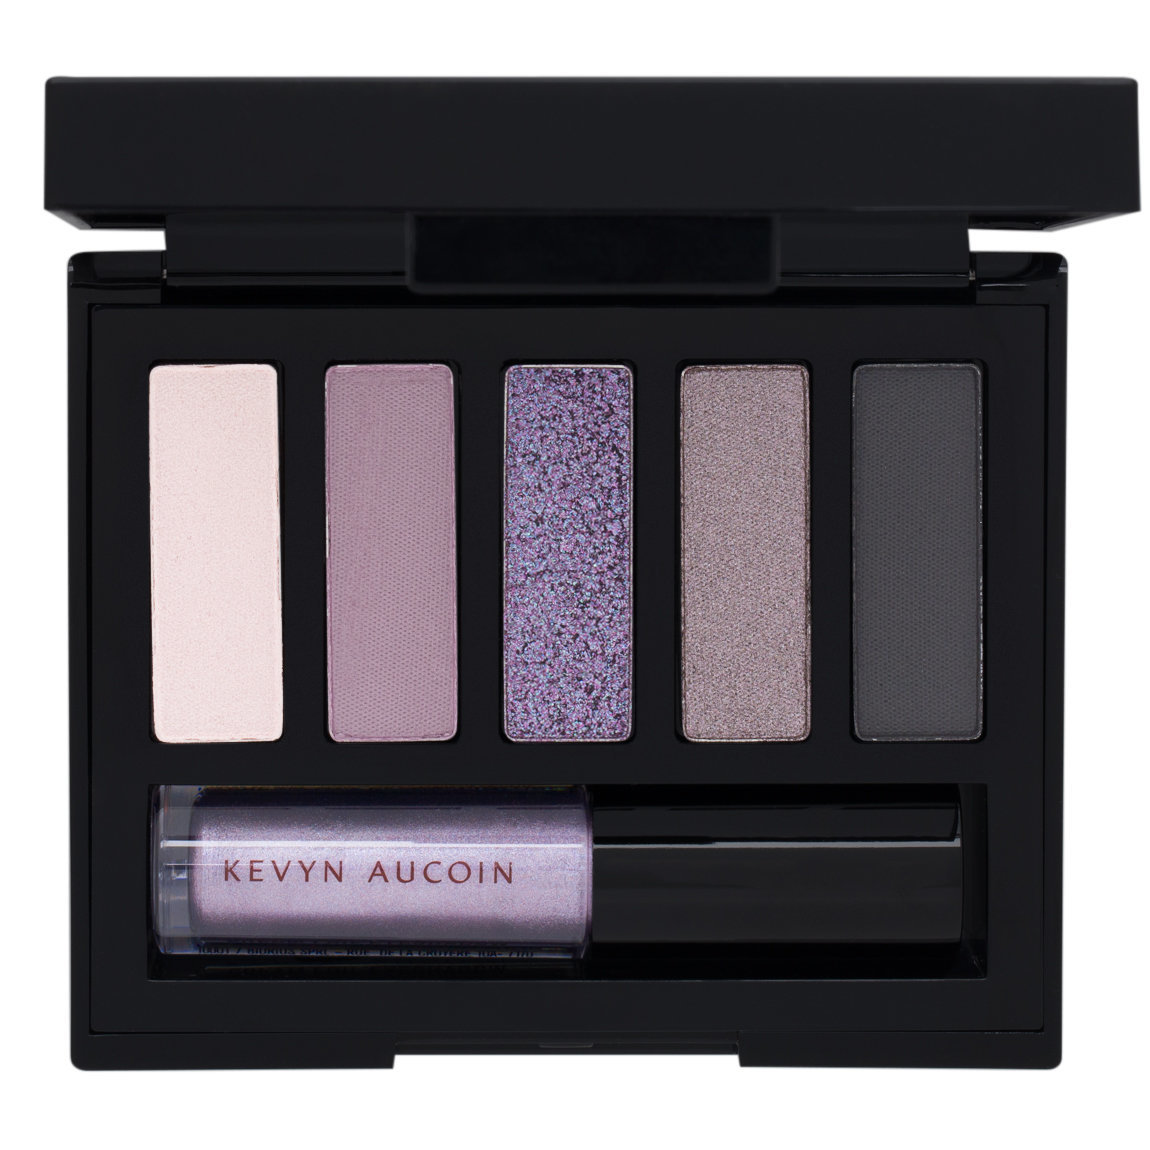 Kevyn Aucoin Emphasize Eye Design Palettes Magnify product smear.